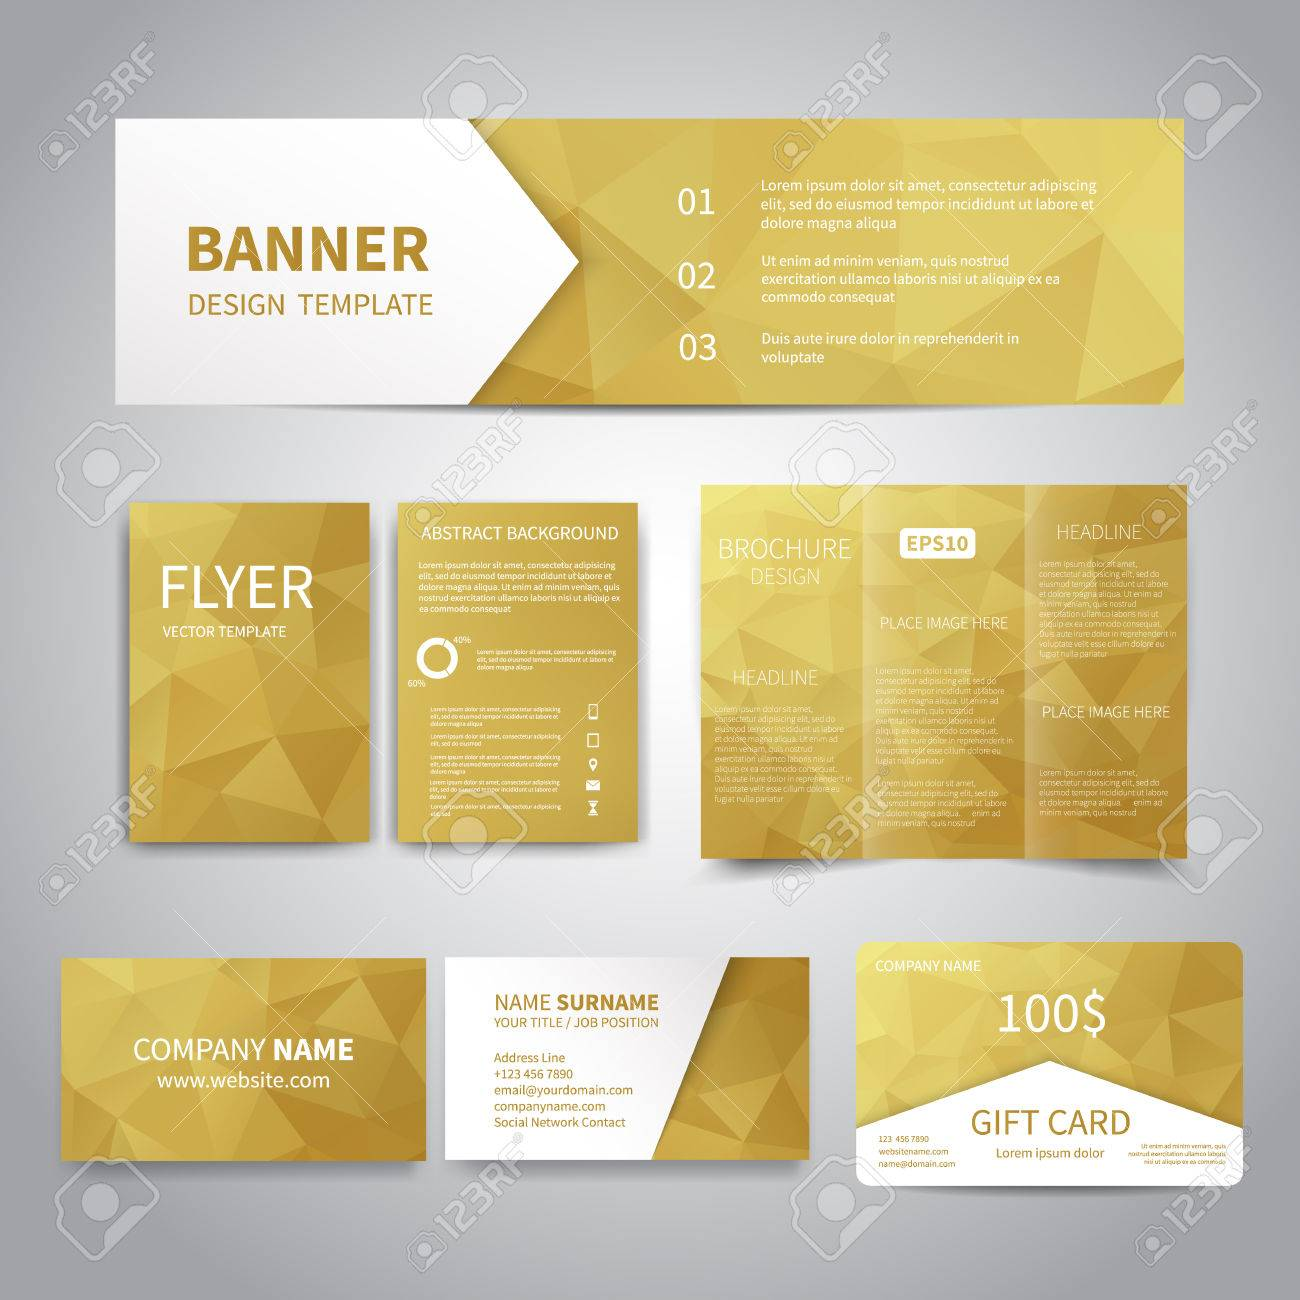 Banner, Flyers, Brochure, Business Cards, Gift Card Design Templates ...